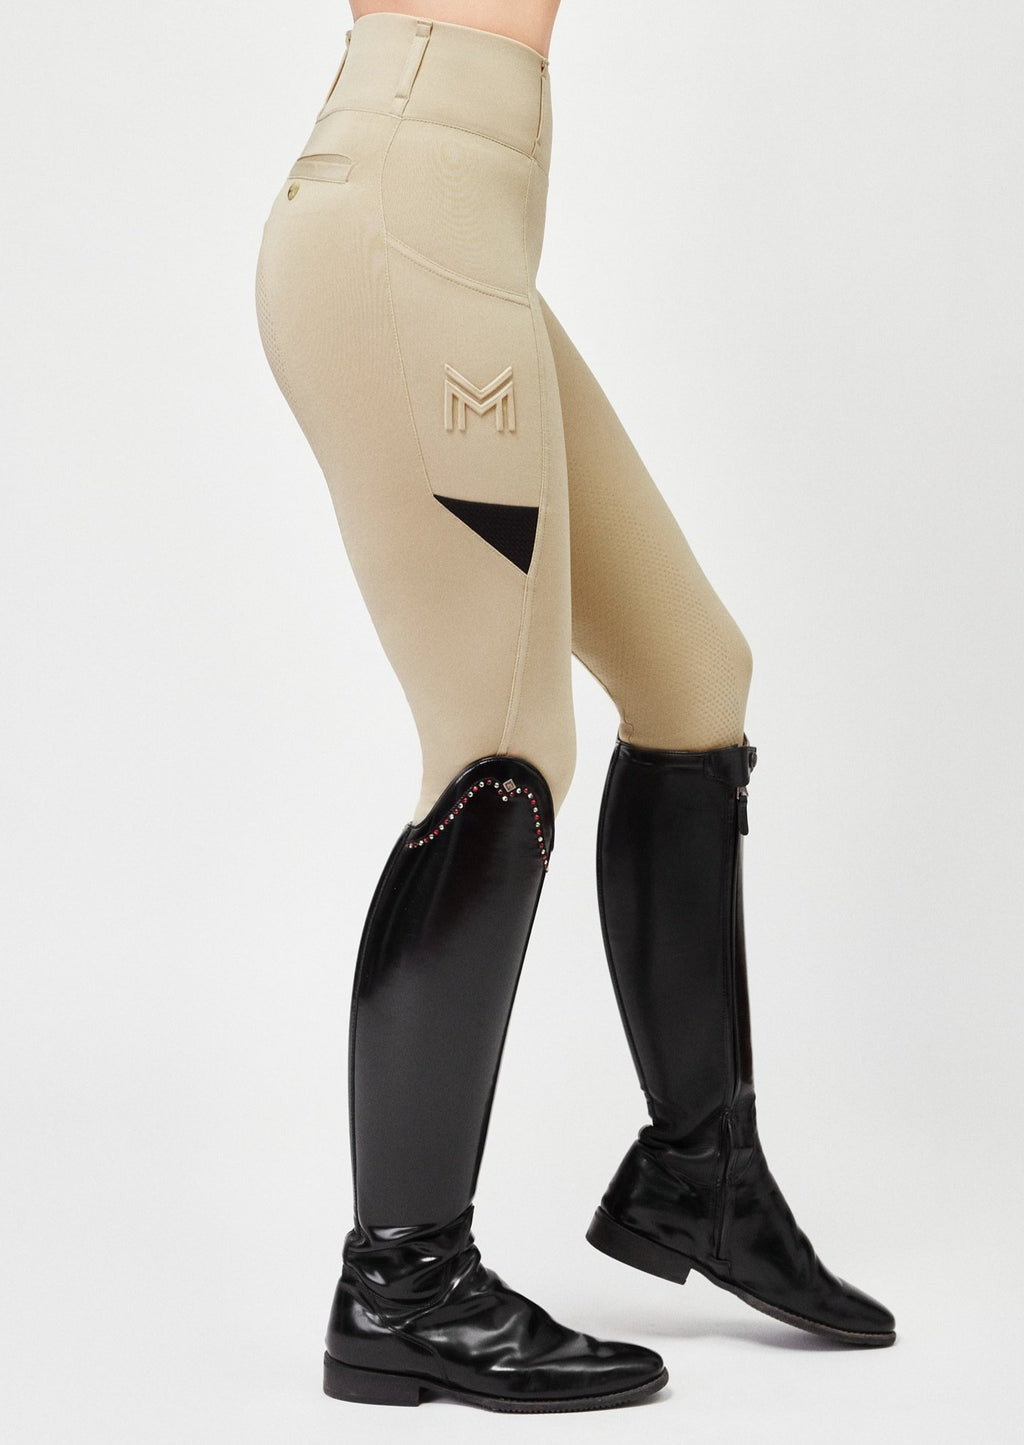 Tech Riding Leggings - Champagne